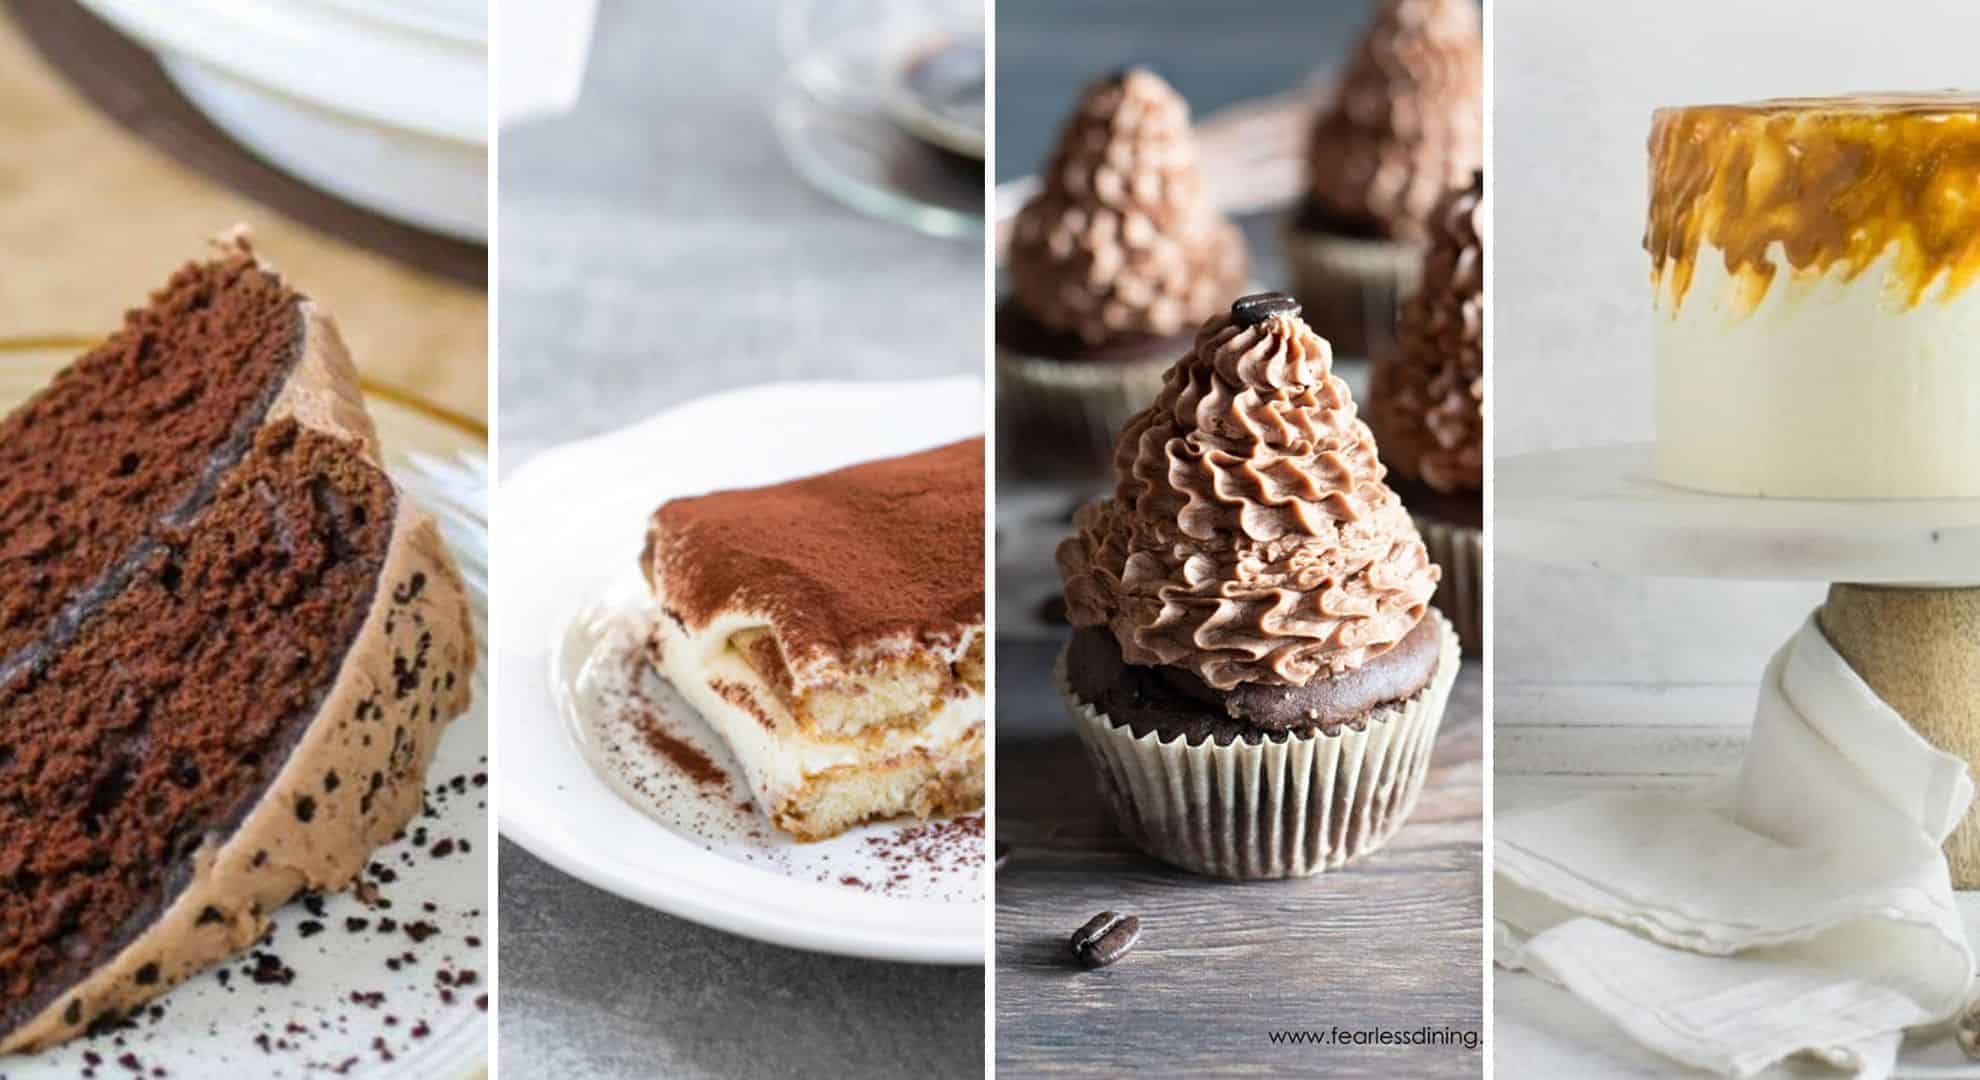 Images of chocolate coffee cake recipes